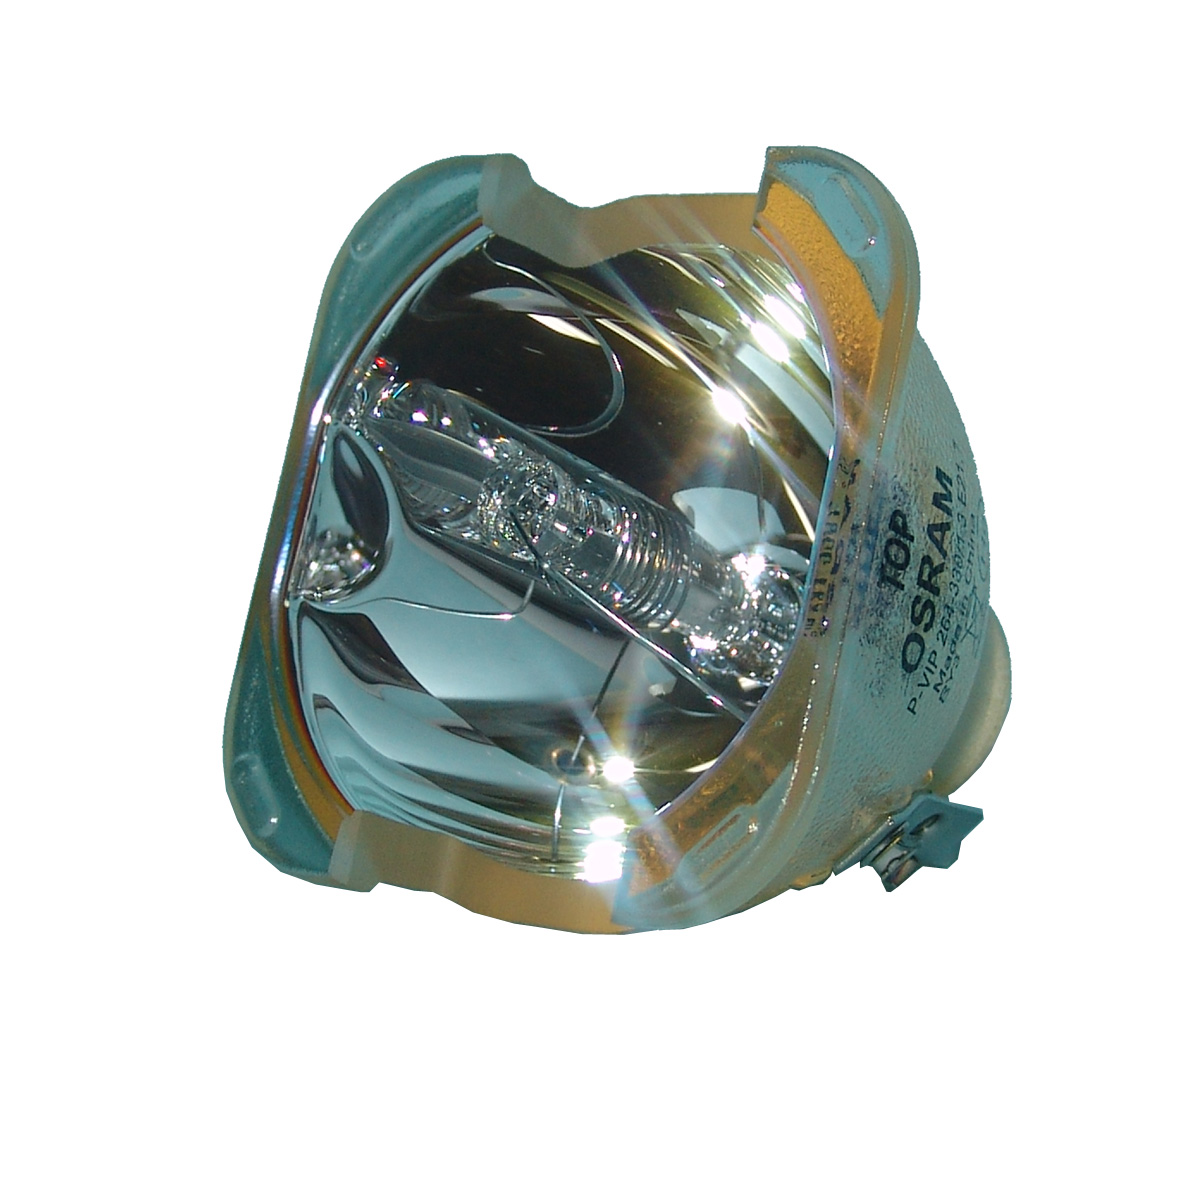 Original Osram Projector Lamp Replacement for Osram 69111-1 (Bulb Only) - image 5 of 5